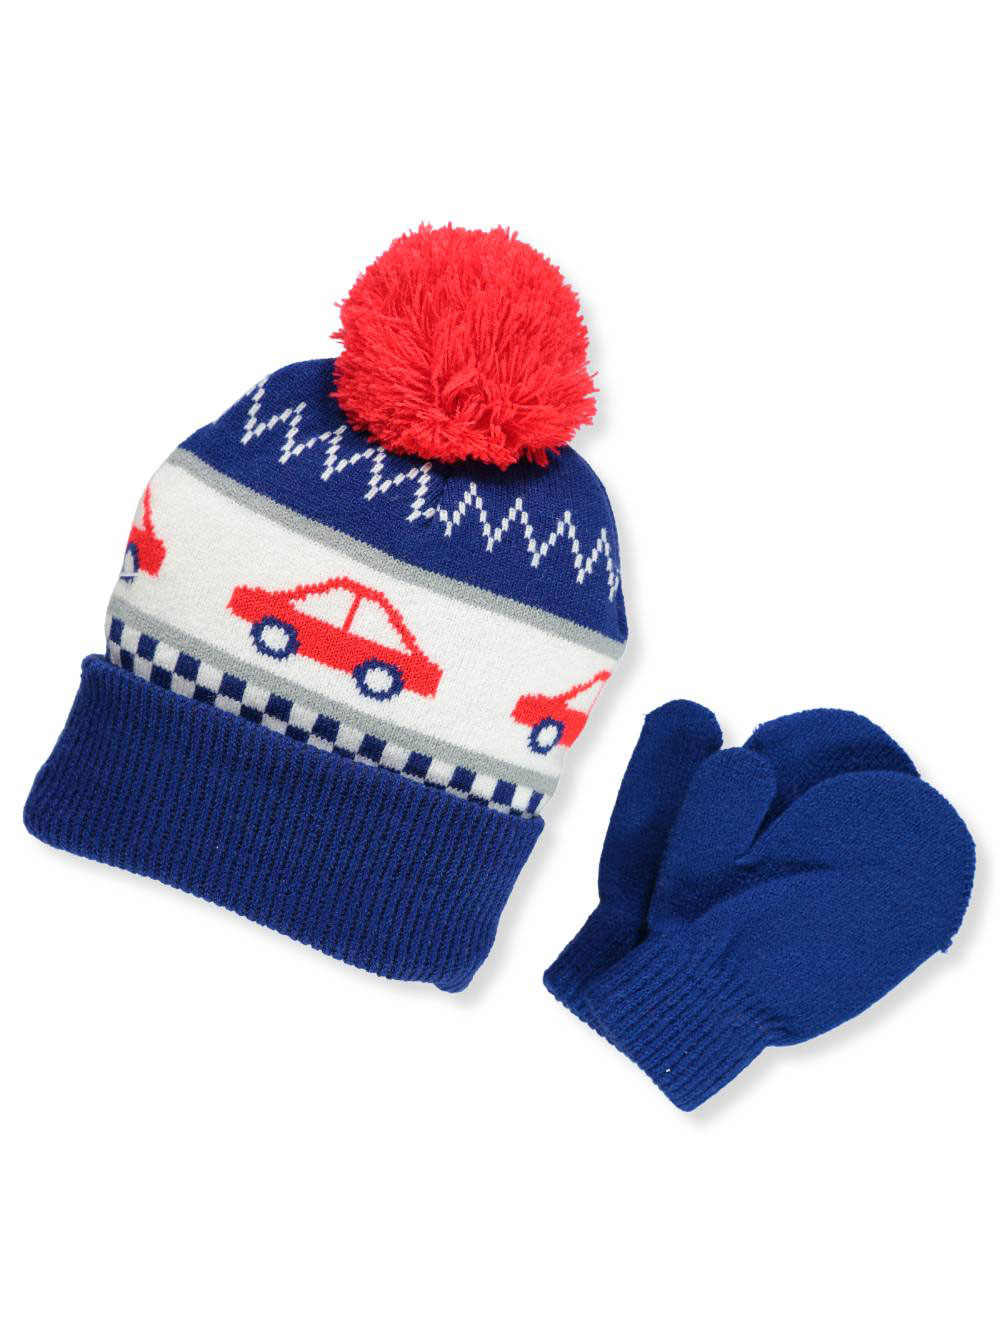 f1144613 Boys' Beanie & Mittens Set by Addie & Tate in Blue/red from Cookie's Kids